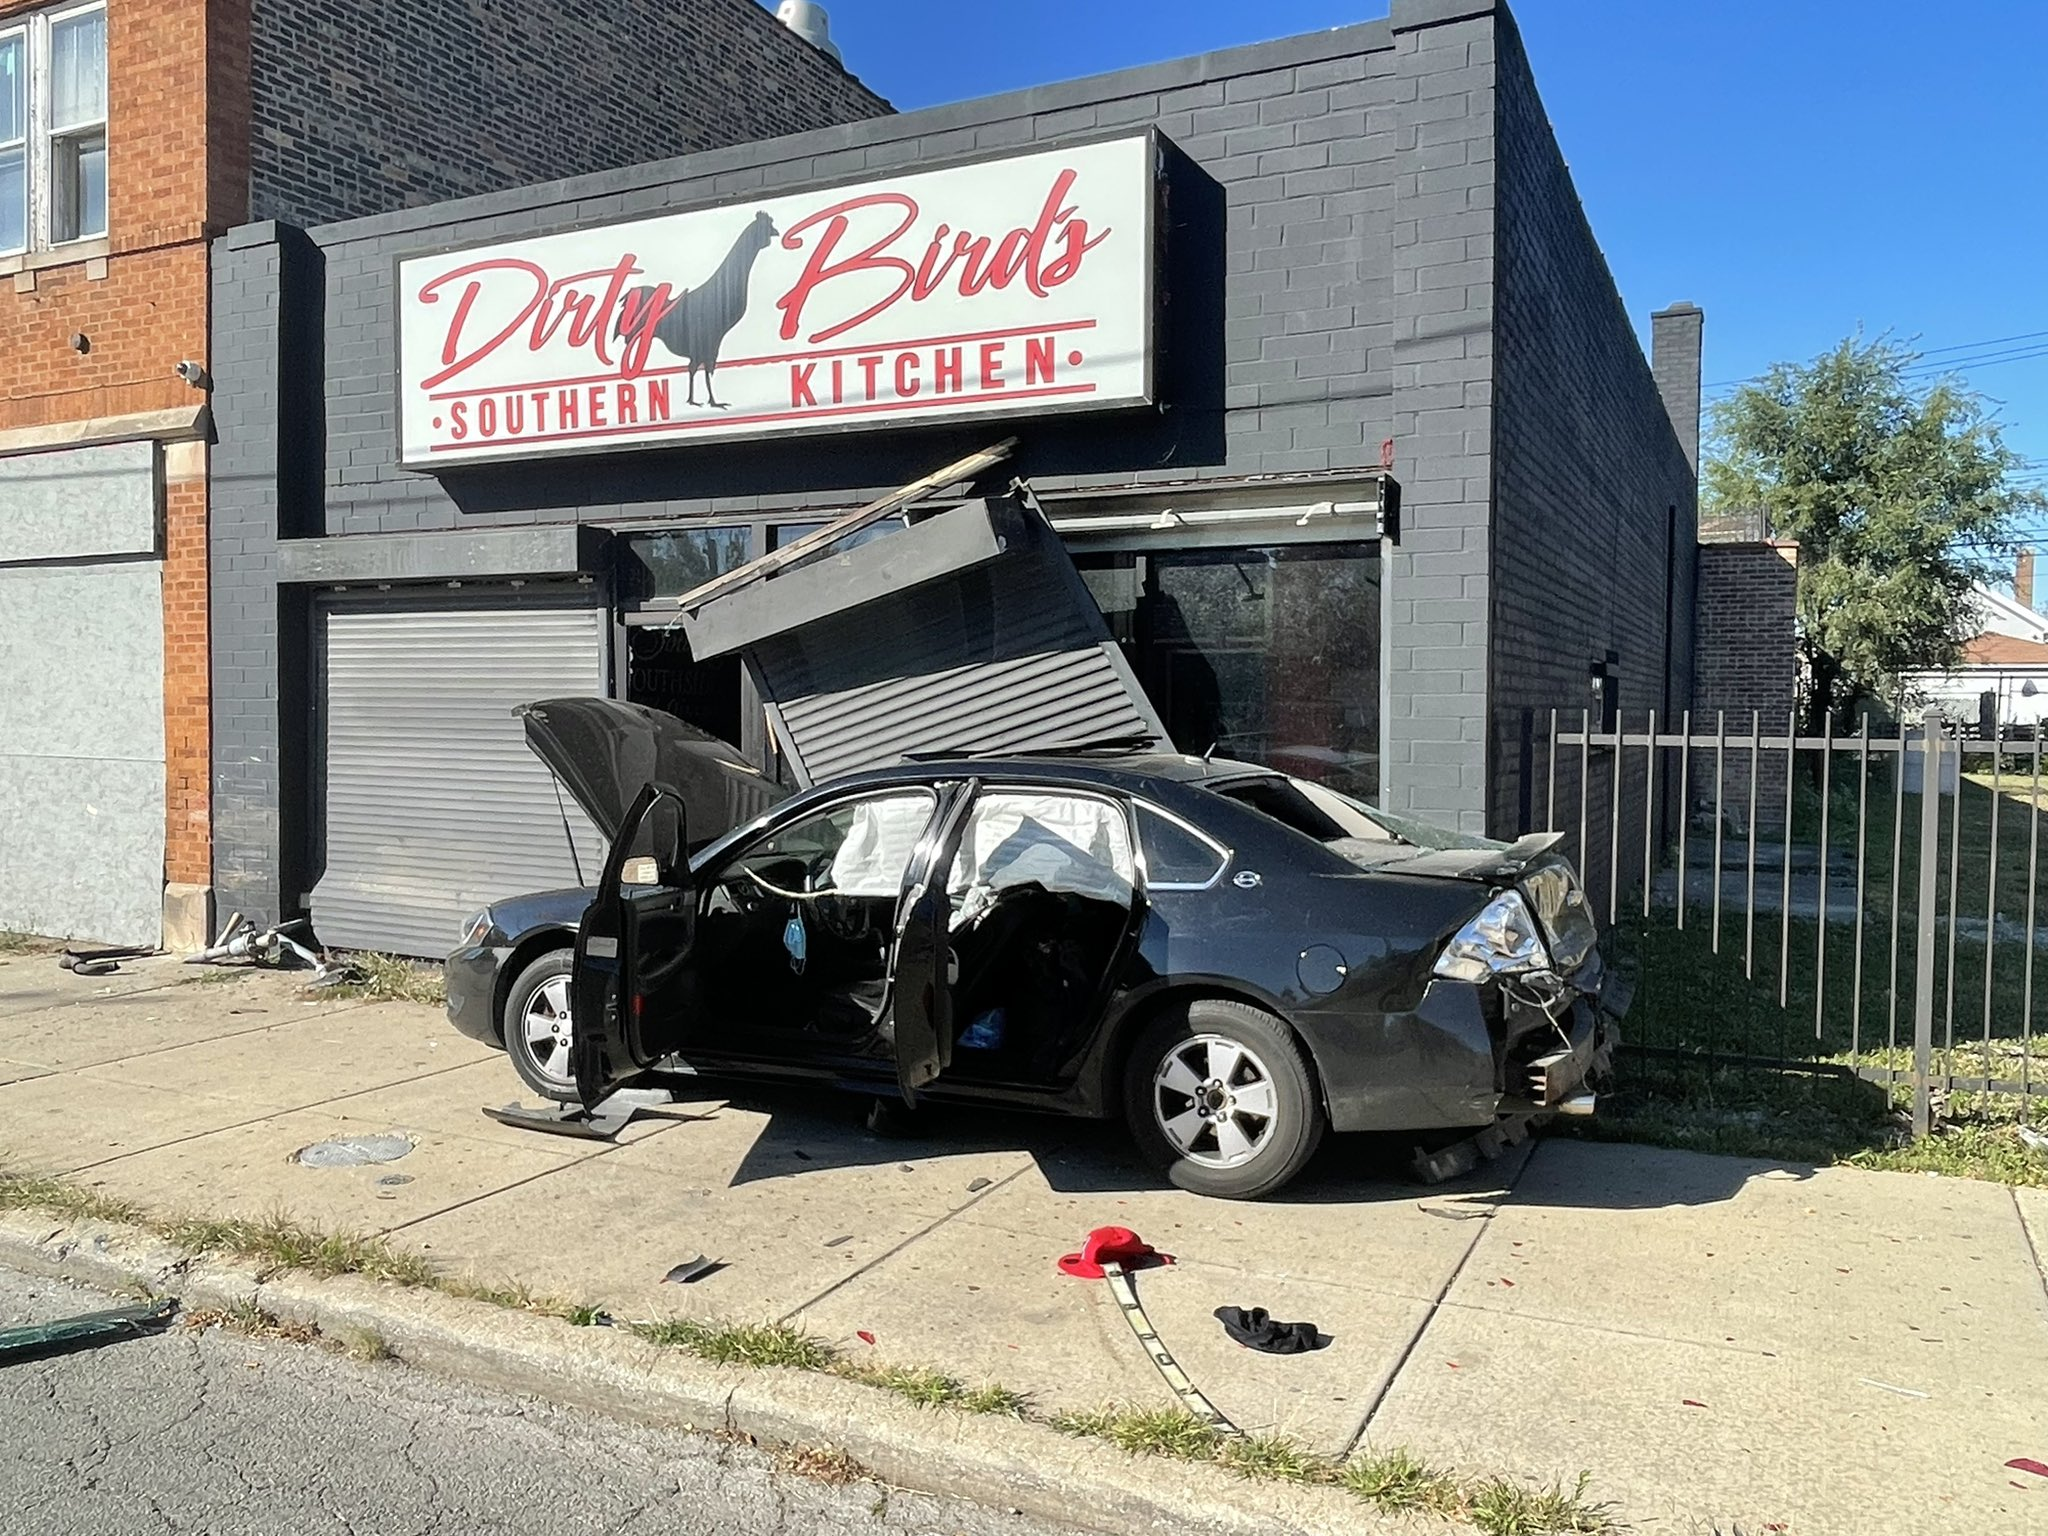 One person was killed and two others seriously injured in a collision Sept. 28, 2021, in Gresham.